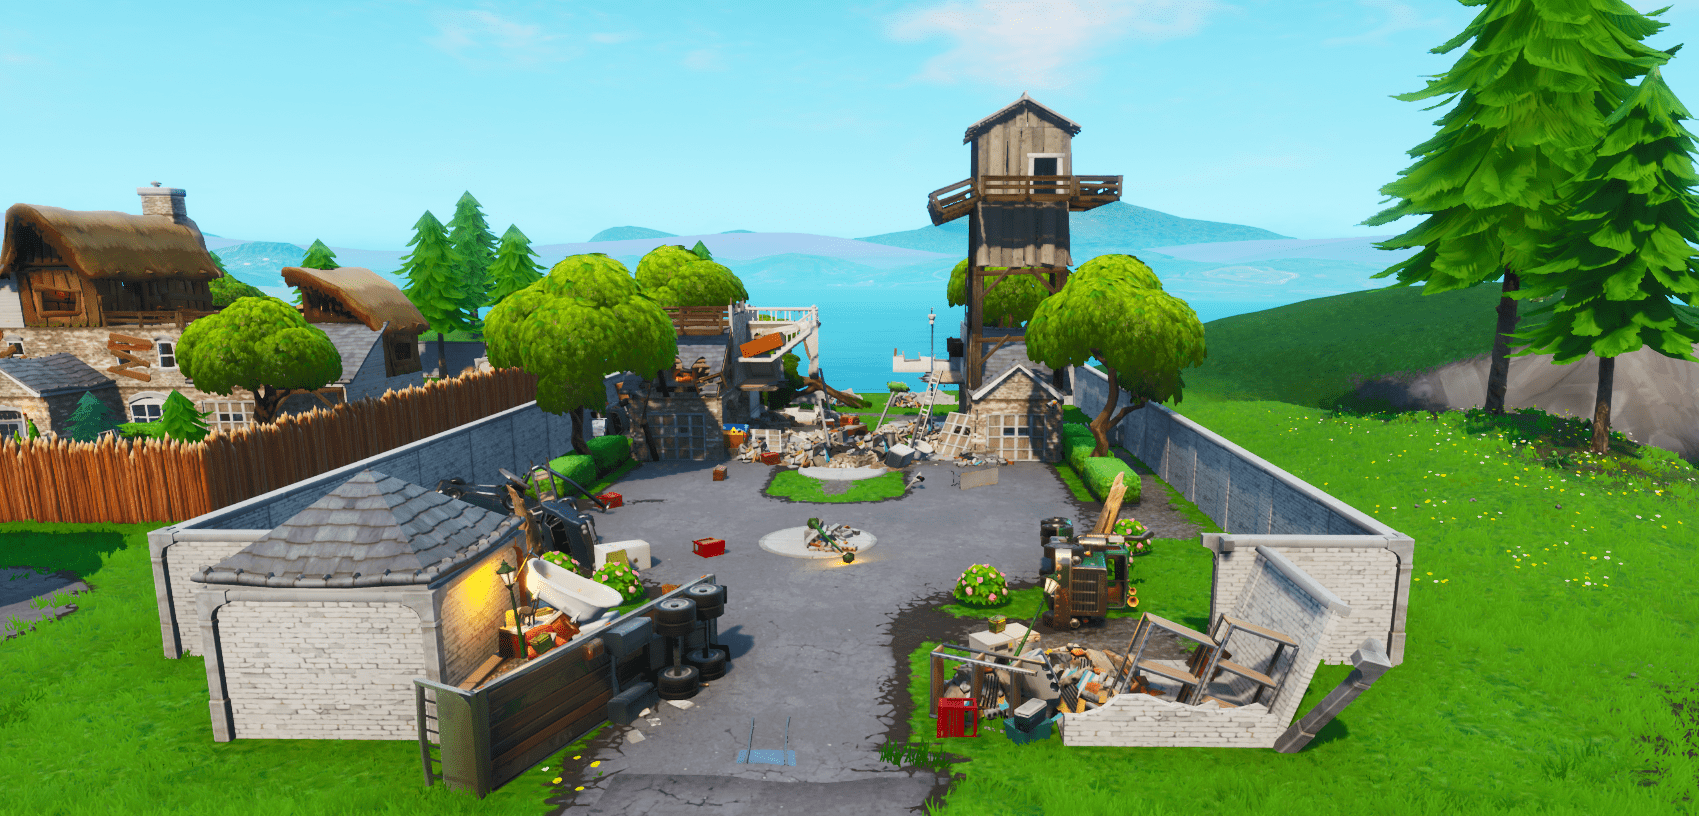 Fortnite v9.21 Map Changes - Last House in Snobby Shores Destroyed